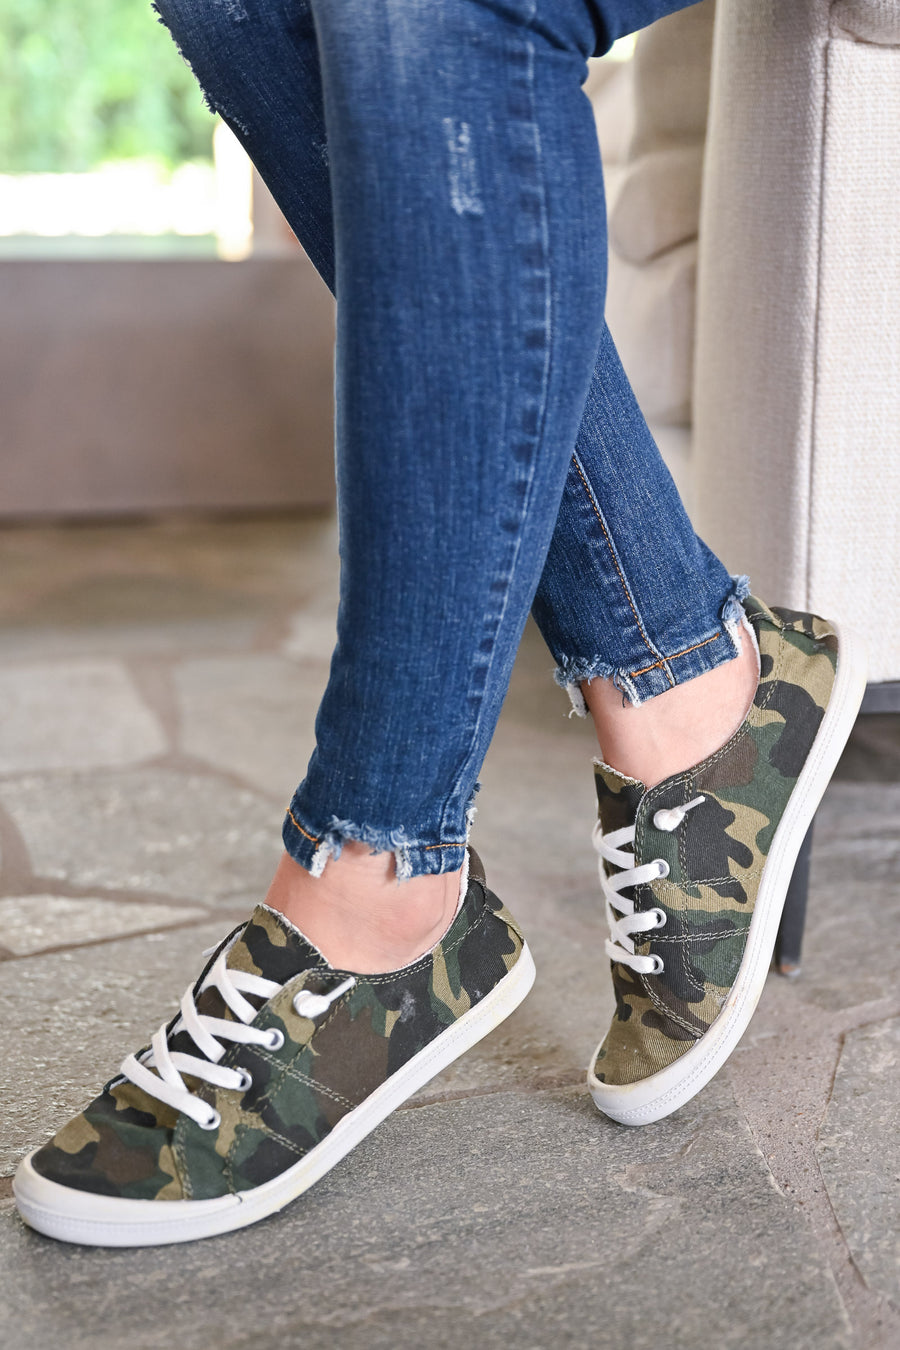 Stacy Sneakers - Camo womens casual slip on camo print sneakers closet candy side